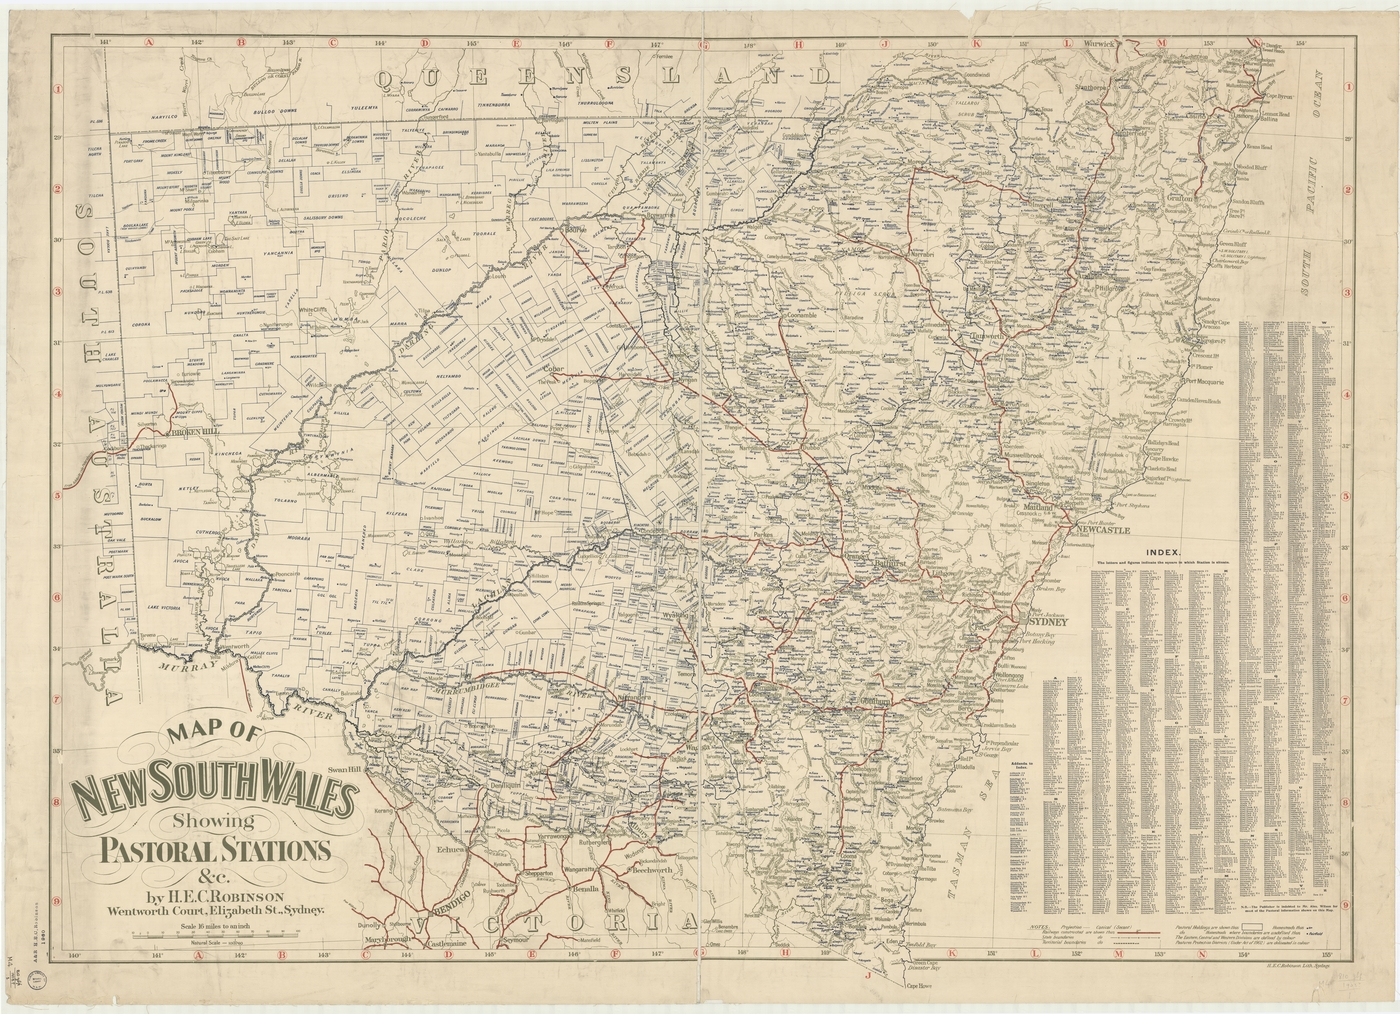 map of new south wales showing pastoral stations c cartographic material by hec robinson